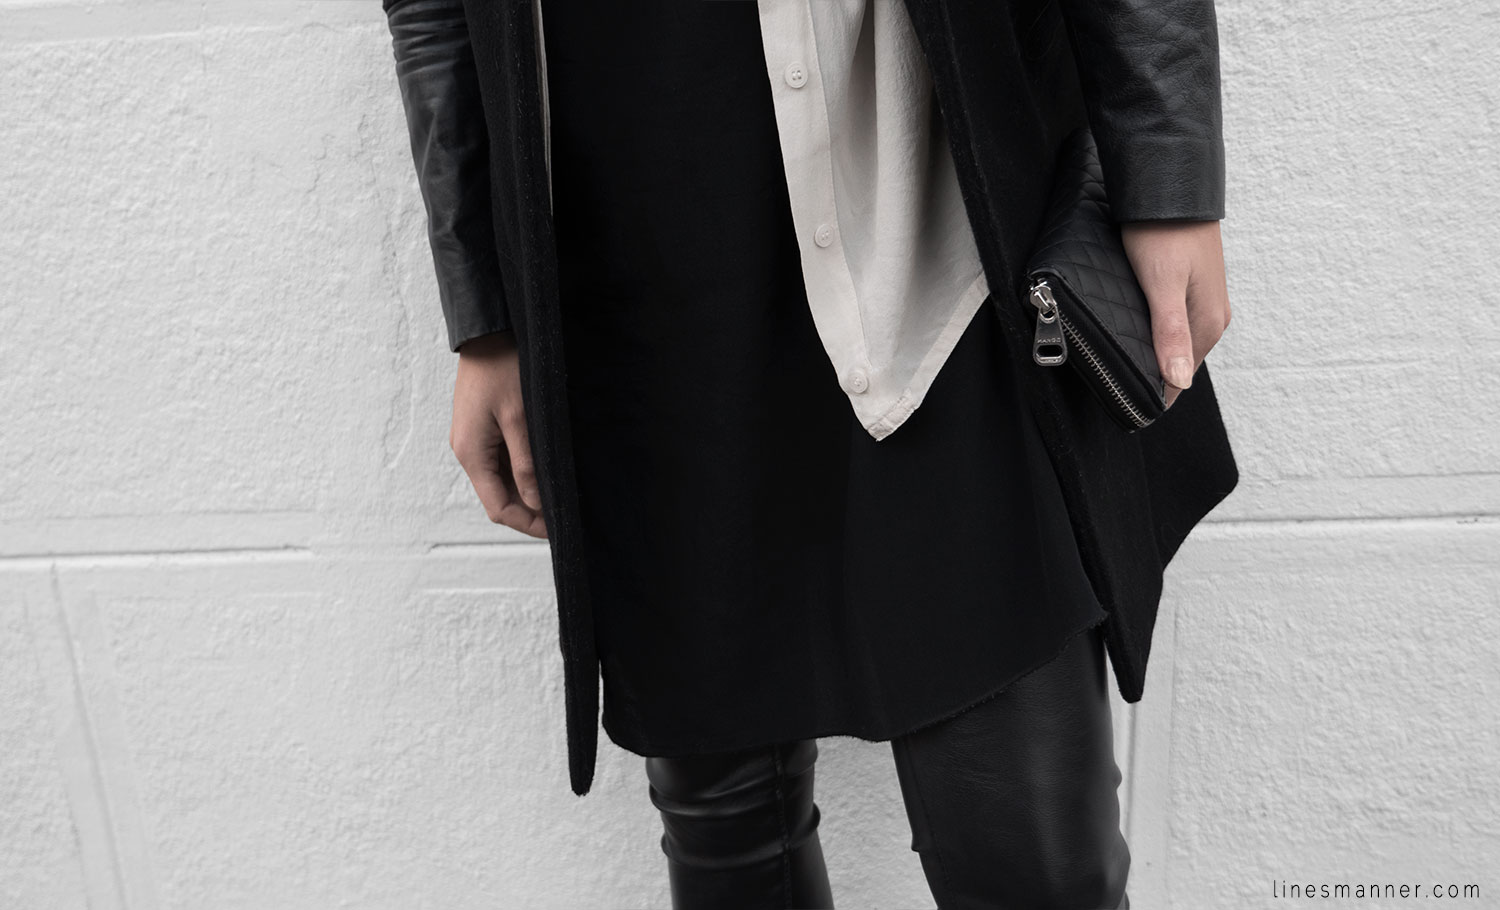 Lines-Manner-Timeless-Comfort-Essentials-Monochrome-Trend-Minimal-Textures-Fall-Leather-Details-Simplicity-Modern-Basics-Outfit-Structure-Relaxed-Leather-Luxurious-Sophistication-9